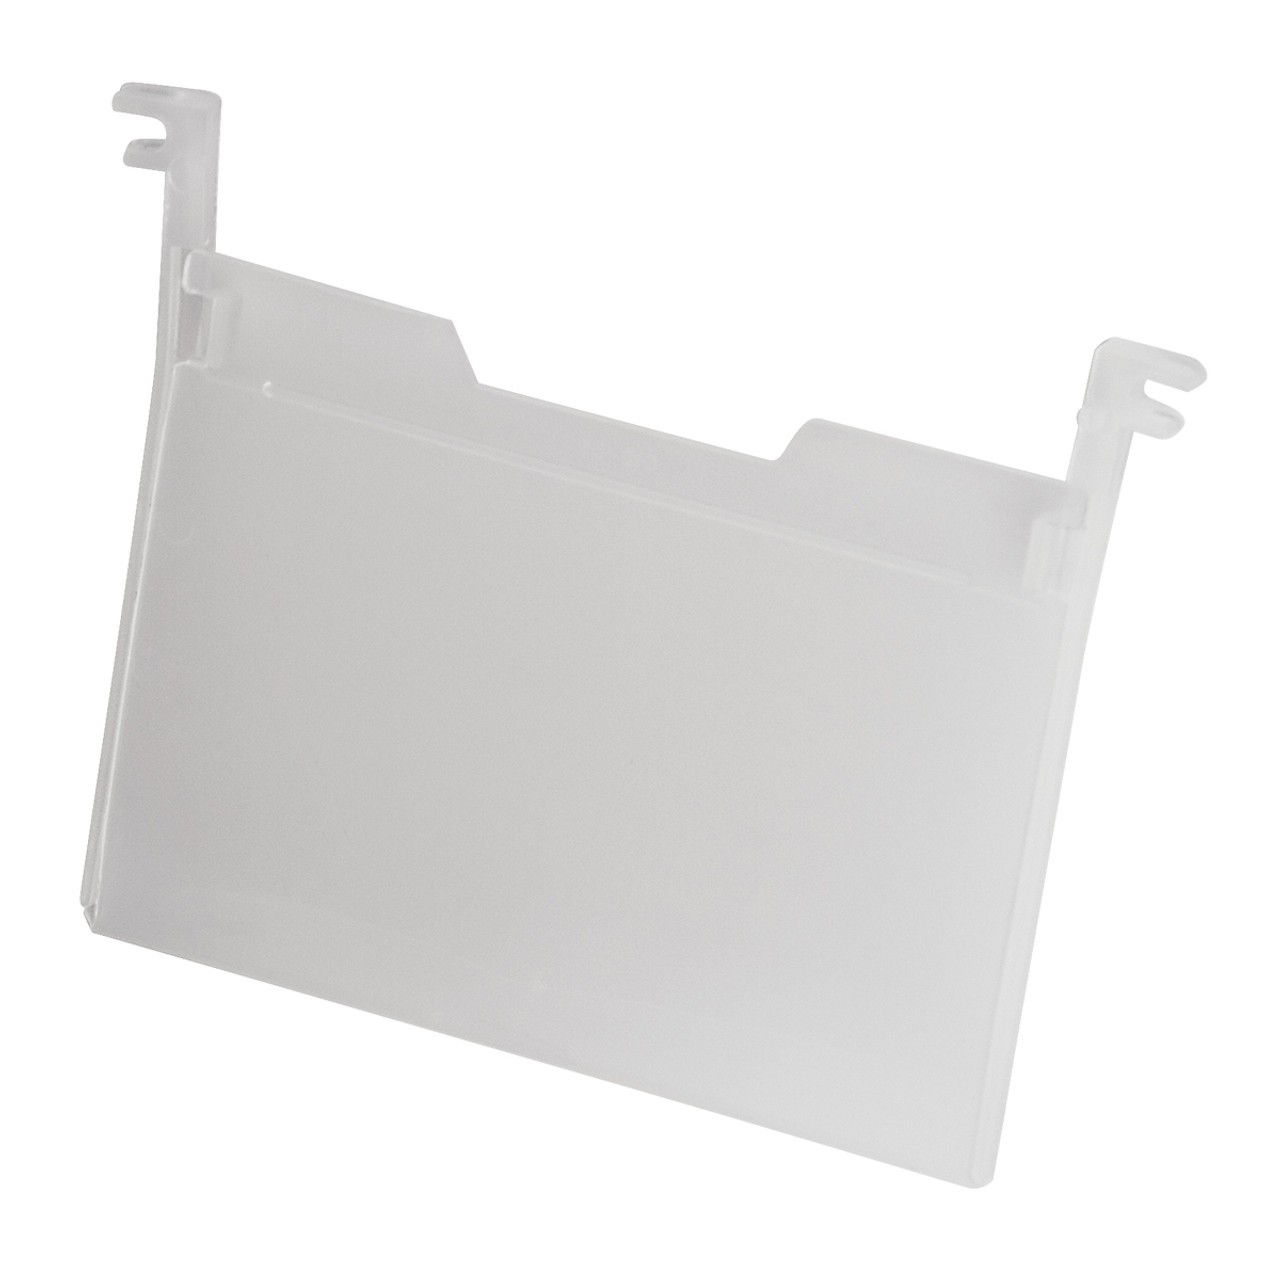 Label Holder for Totes, 6 Pk, Clear  35010